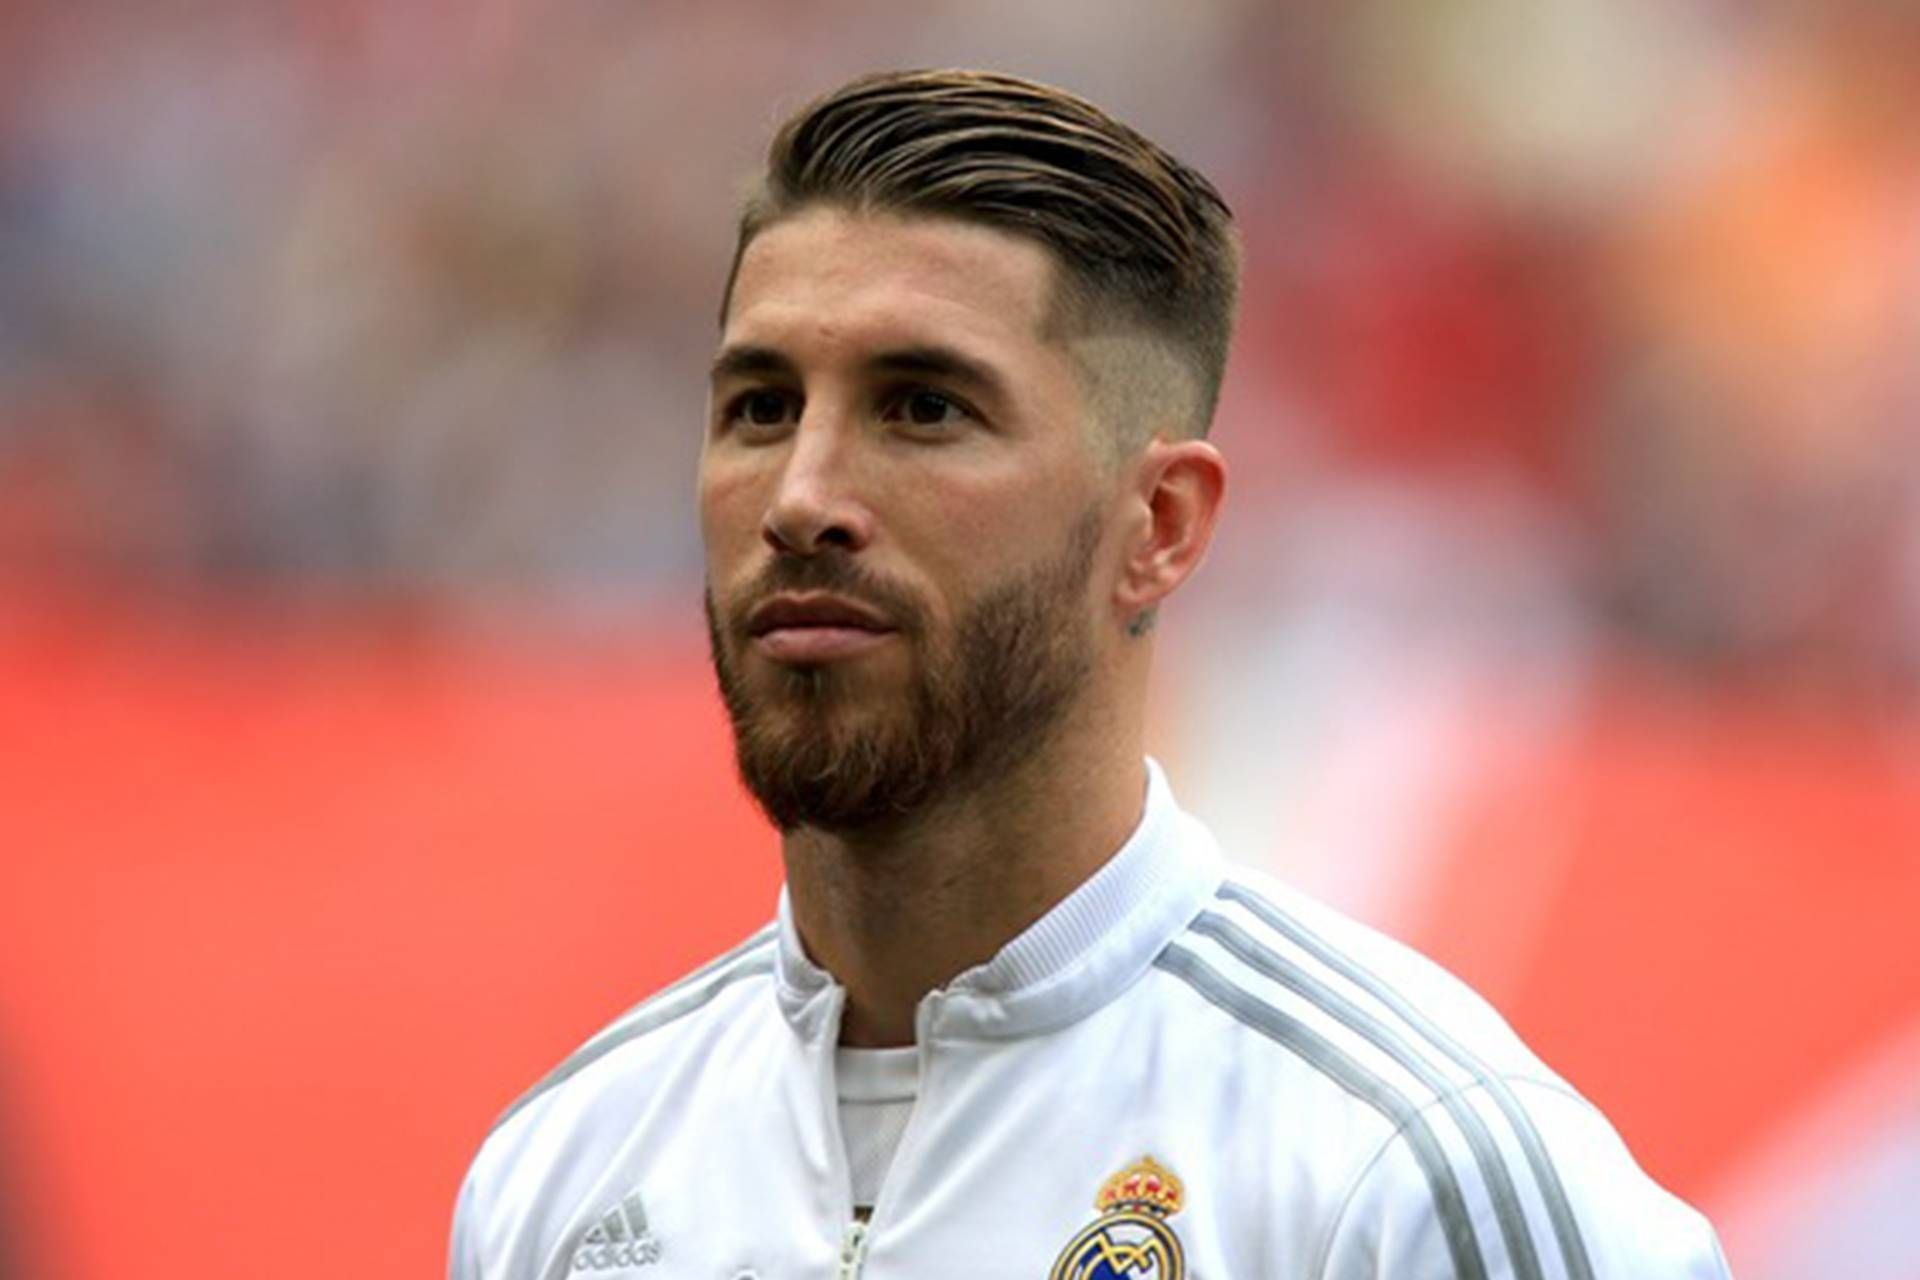 Pin on Sergio Ramos Haircut